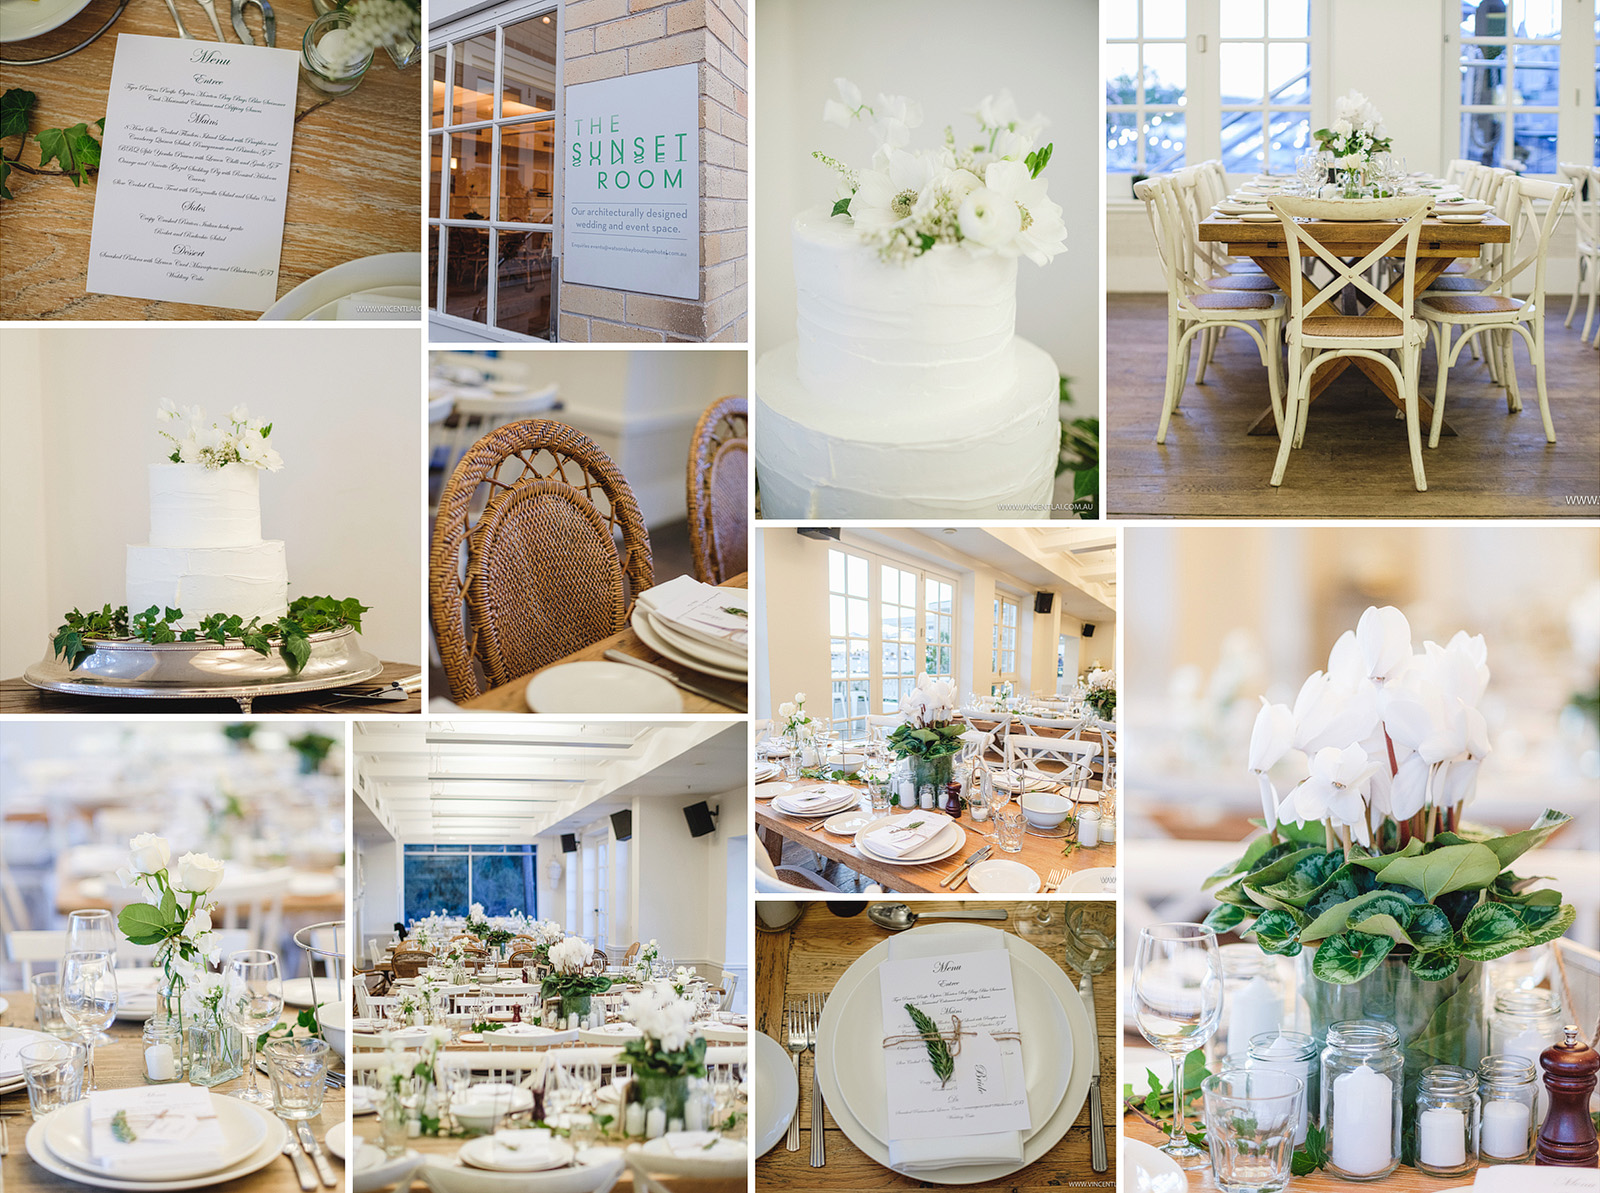 Watsons Bay Boutique Hotel Wedding Sunset Room